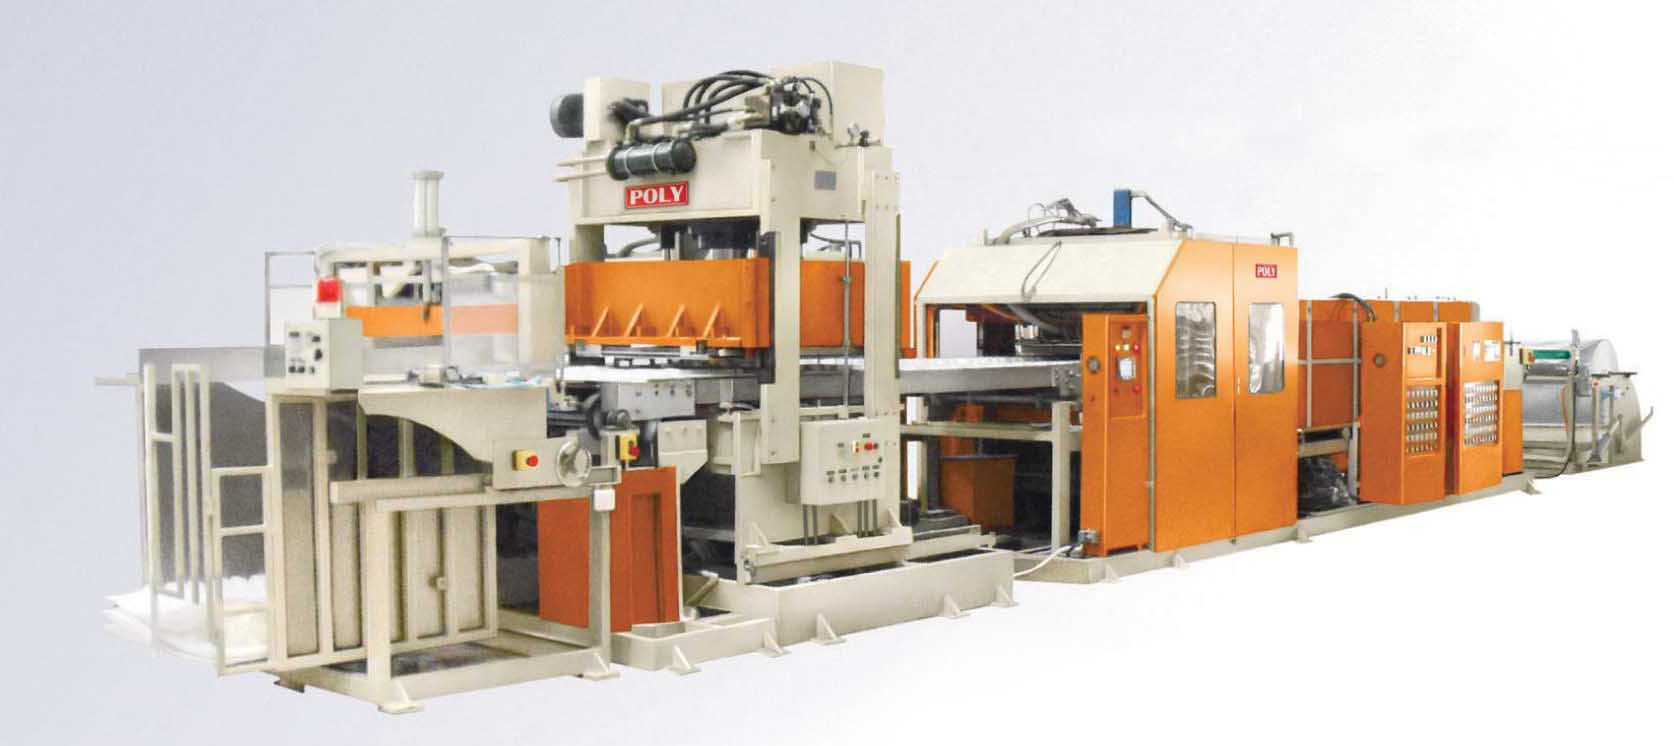 Poly Machinery's in-line die cutting forming machines is highlighted for completing a production cycle in 3.4 seconds.